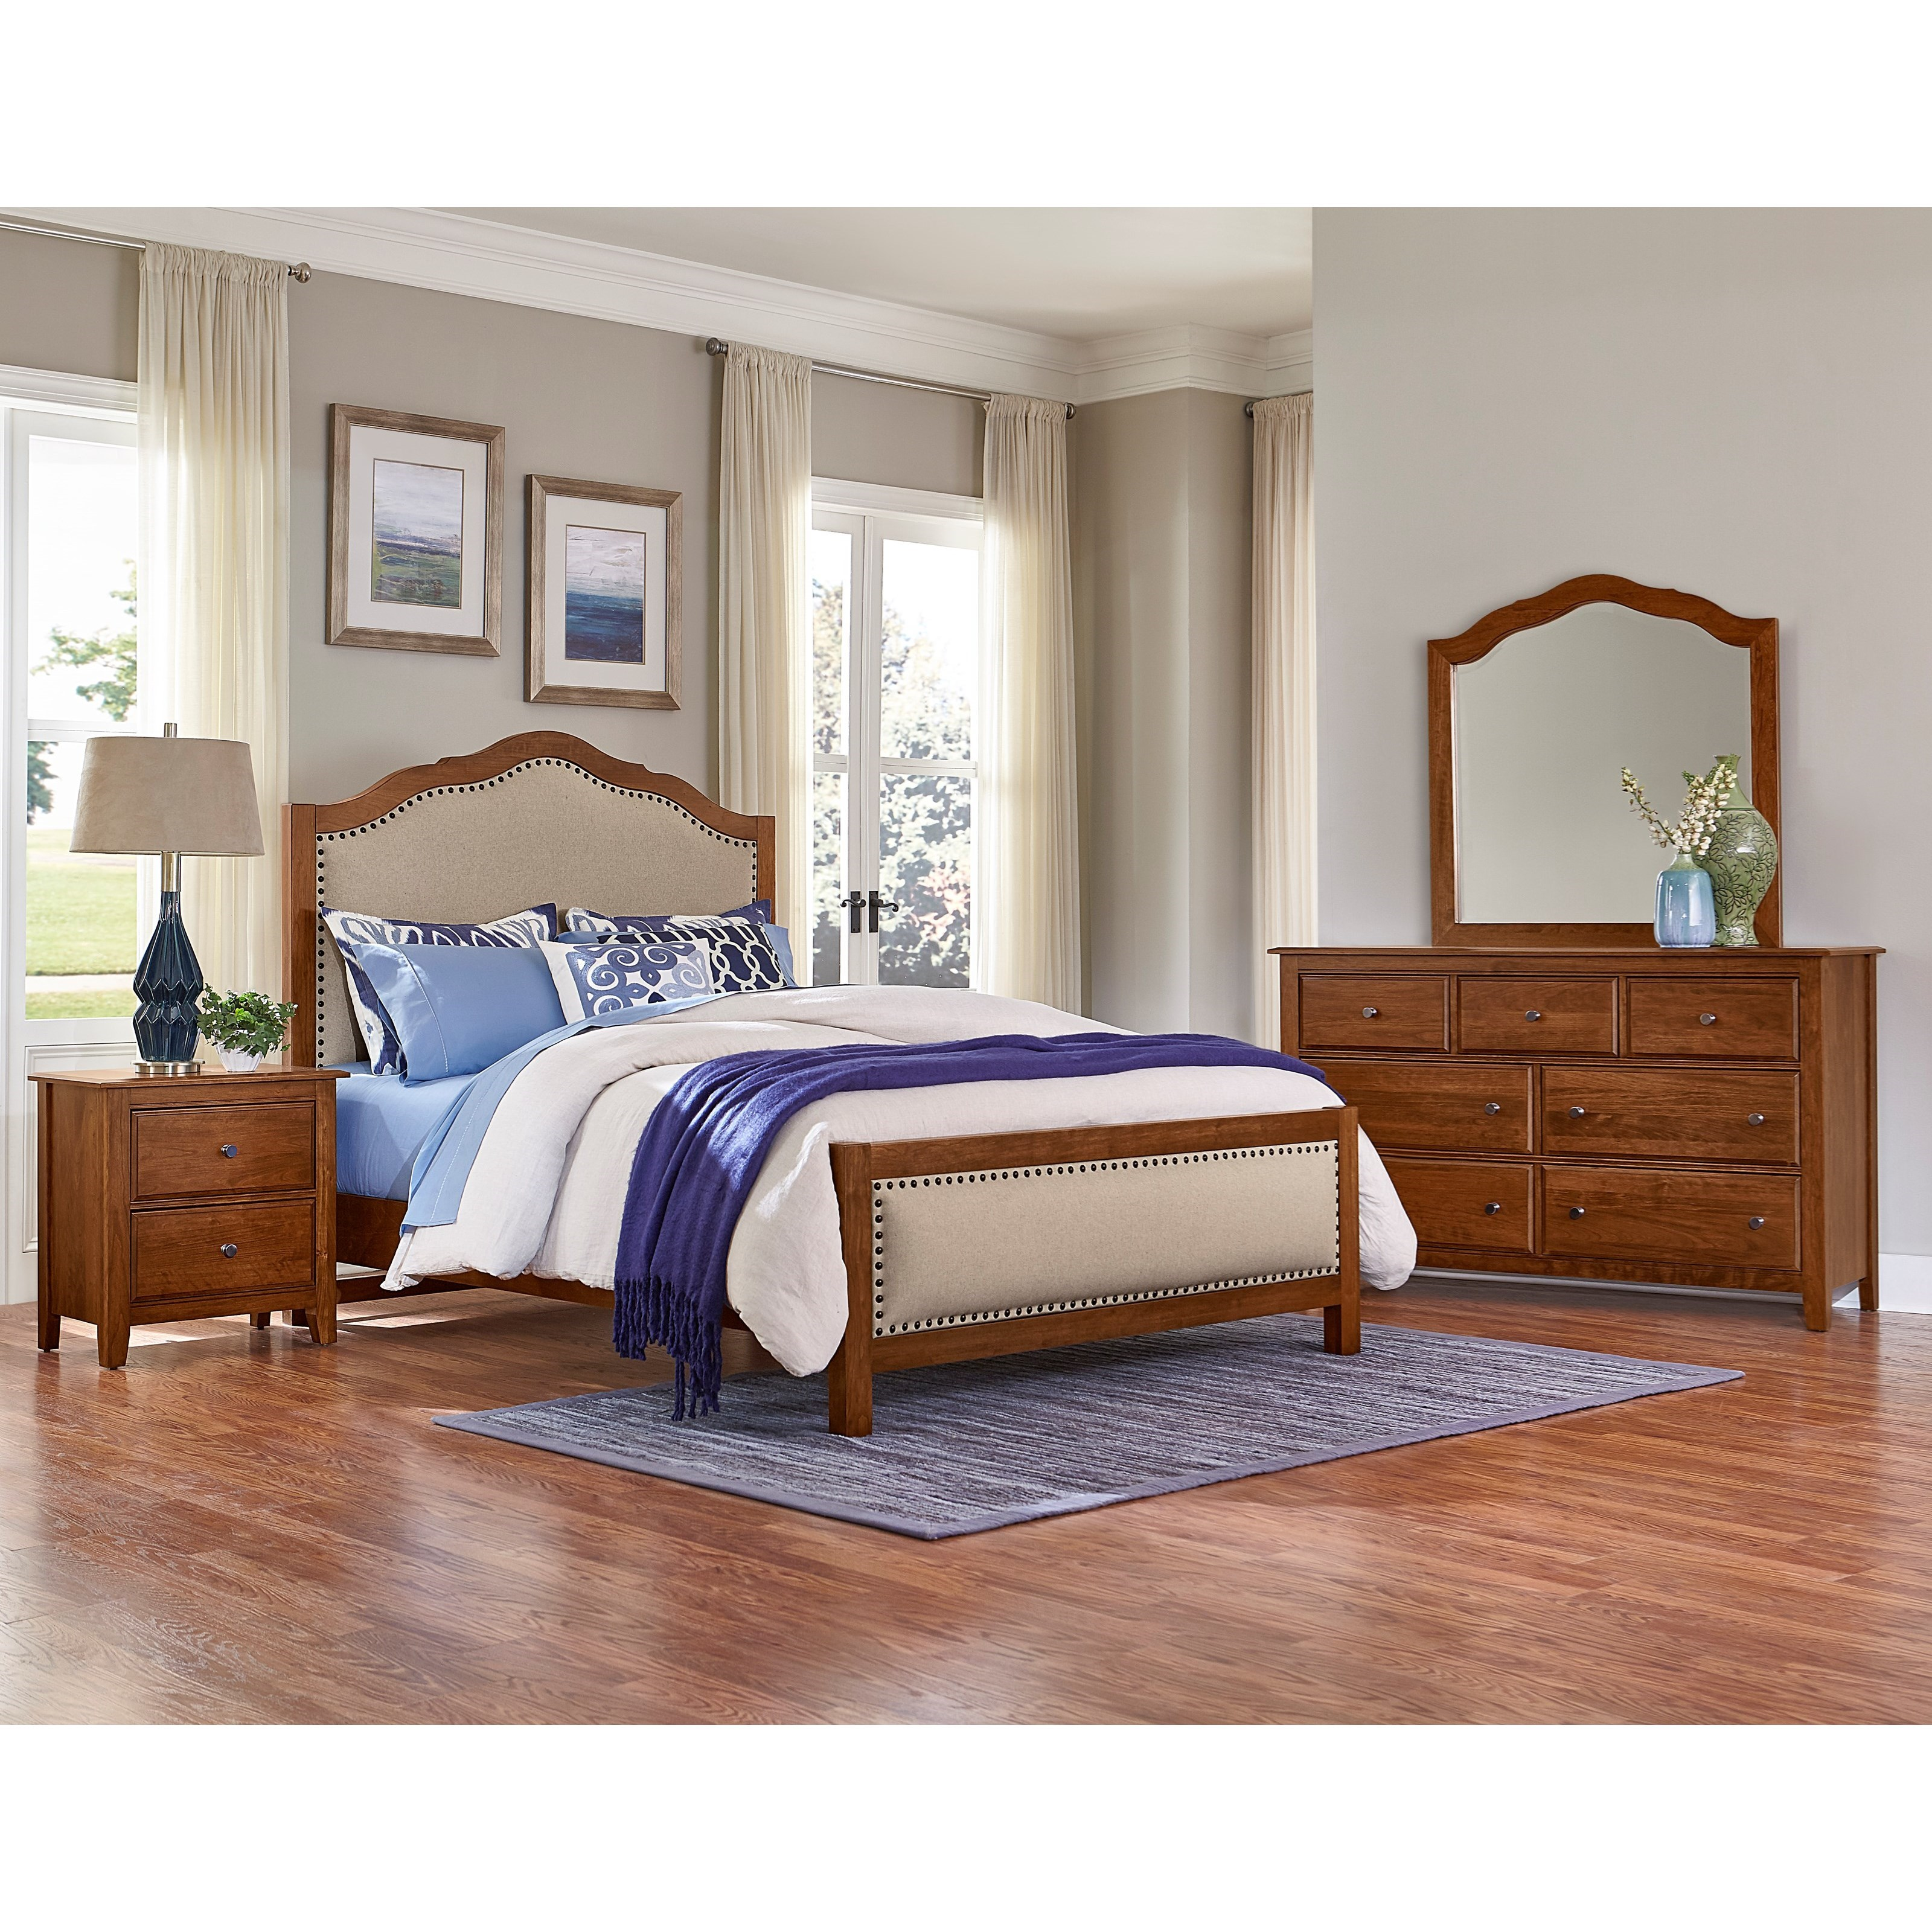 Artisan Choices Queen Bedroom Group by Artisan & Post at Rooms and Rest